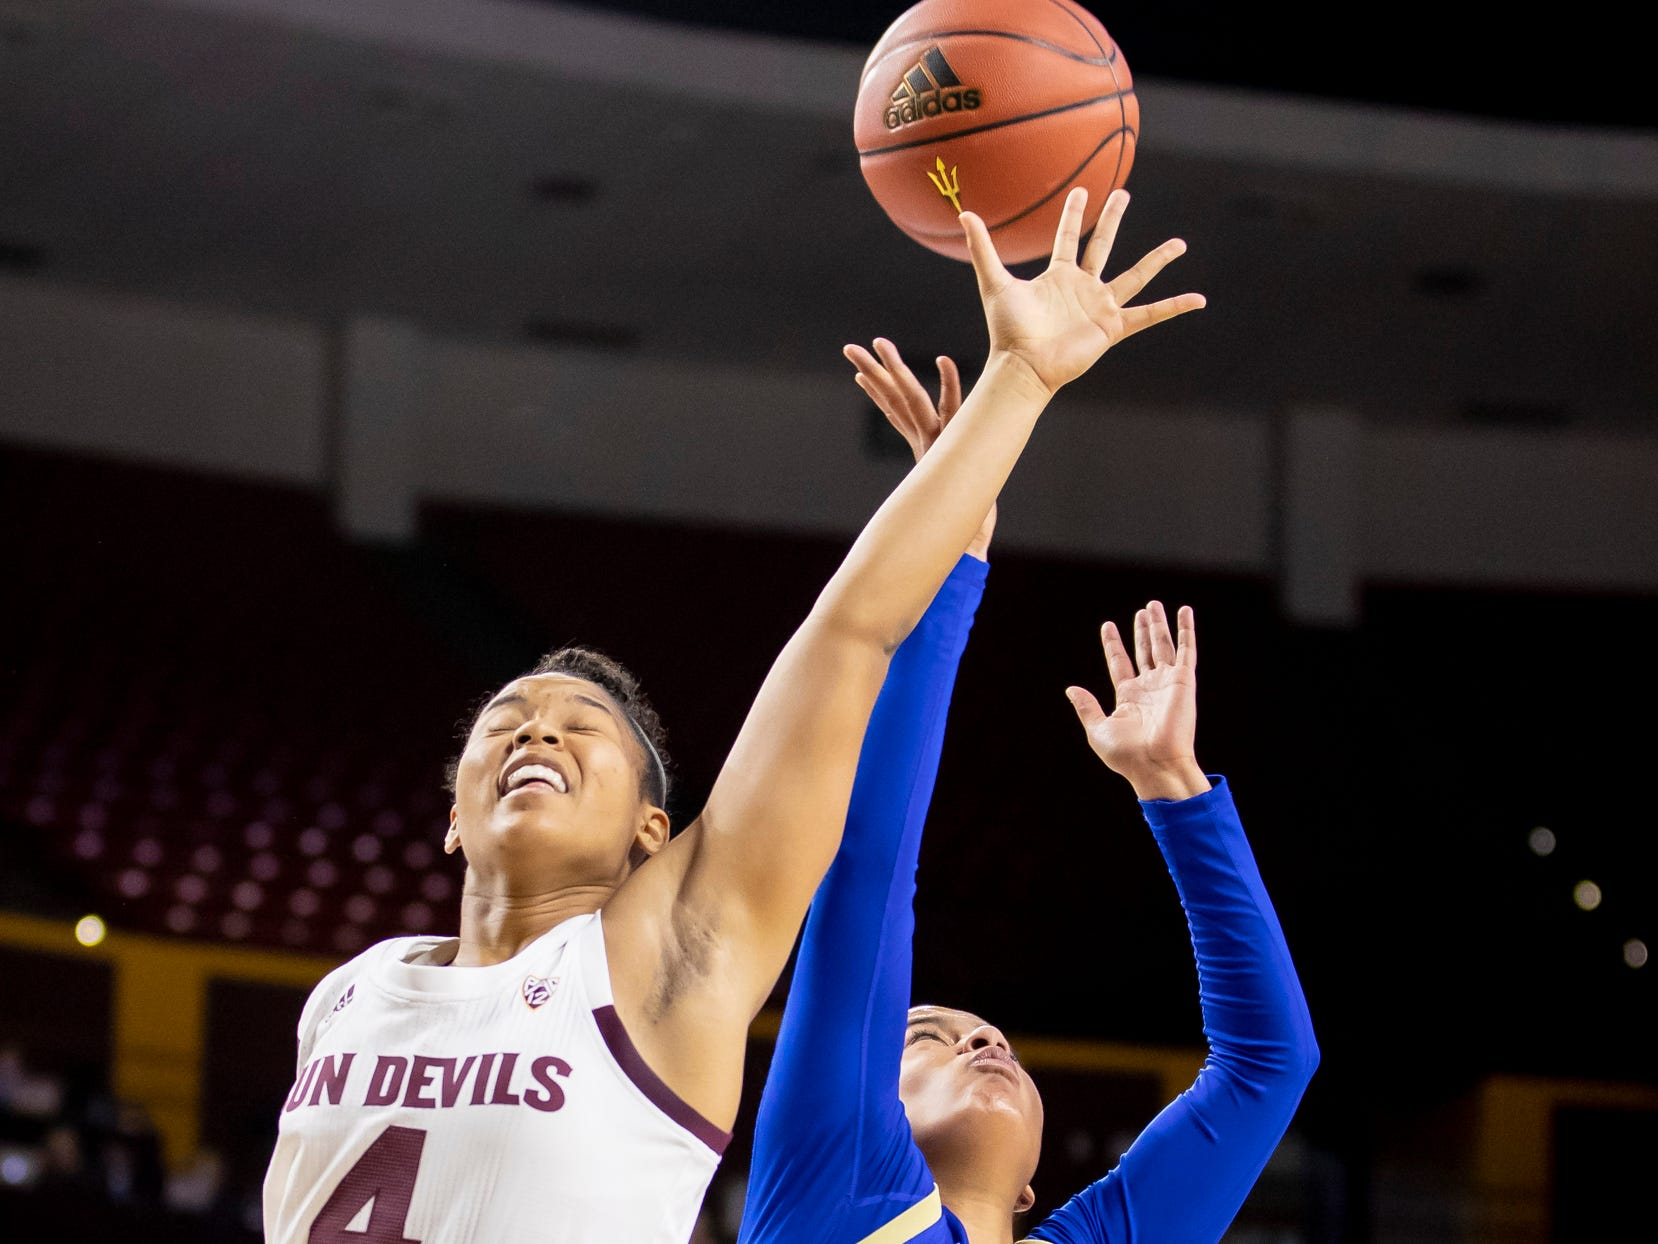 Guard Kiara Russell (4) of the Arizona State Sun Devils and guard Rebecca Lescay (21) of Tulsa Golden Hurricane reach for a rebound at Wells Fargo Arena on Sunday, December 2, 2018 in Tempe, Arizona.